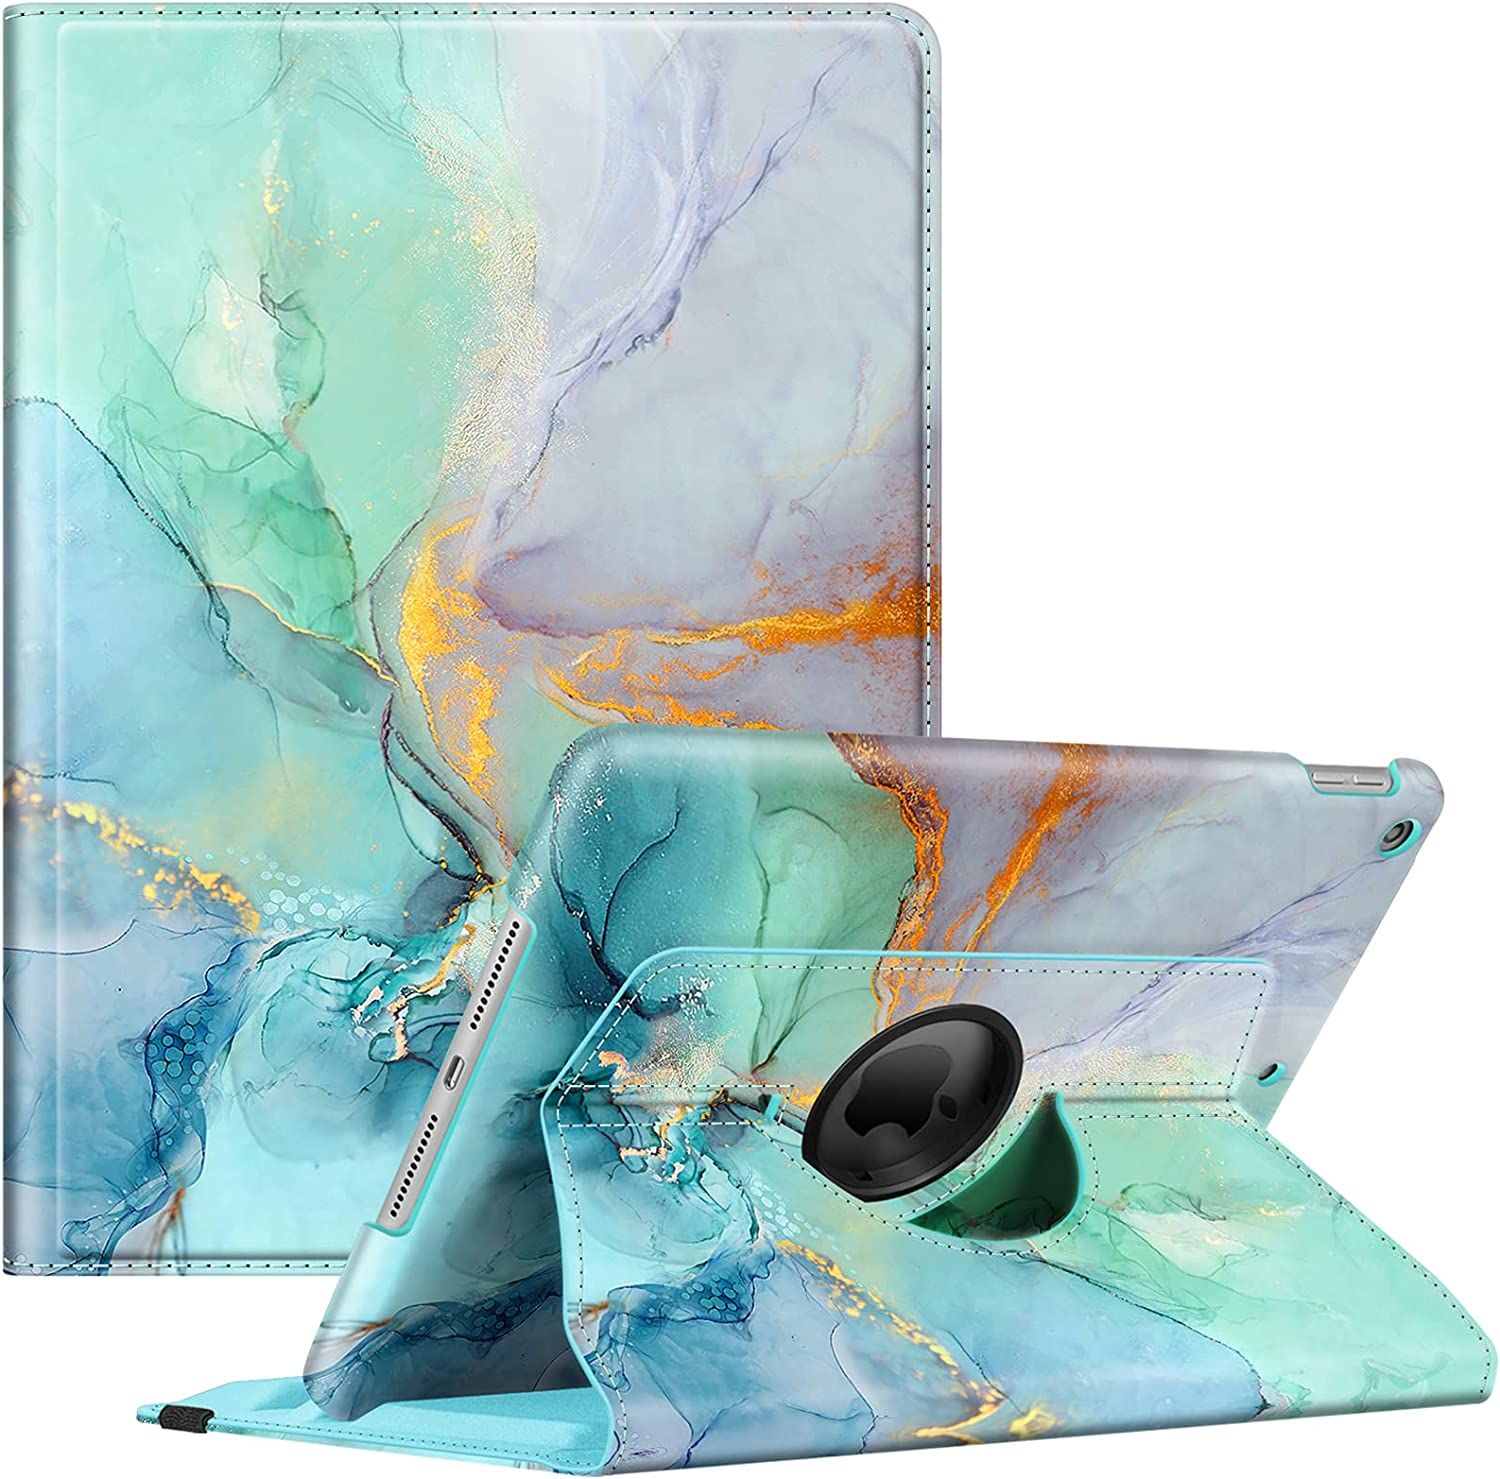 Fintie Rotating Case for New iPad 8th Gen (2020) / 7th Generation (2019) 10.2 Inch - [Built-in Pencil Holder] 360 Degree Rotating Smart Protective Stand Cover with Auto Sleep/Wake, Emerald Marble